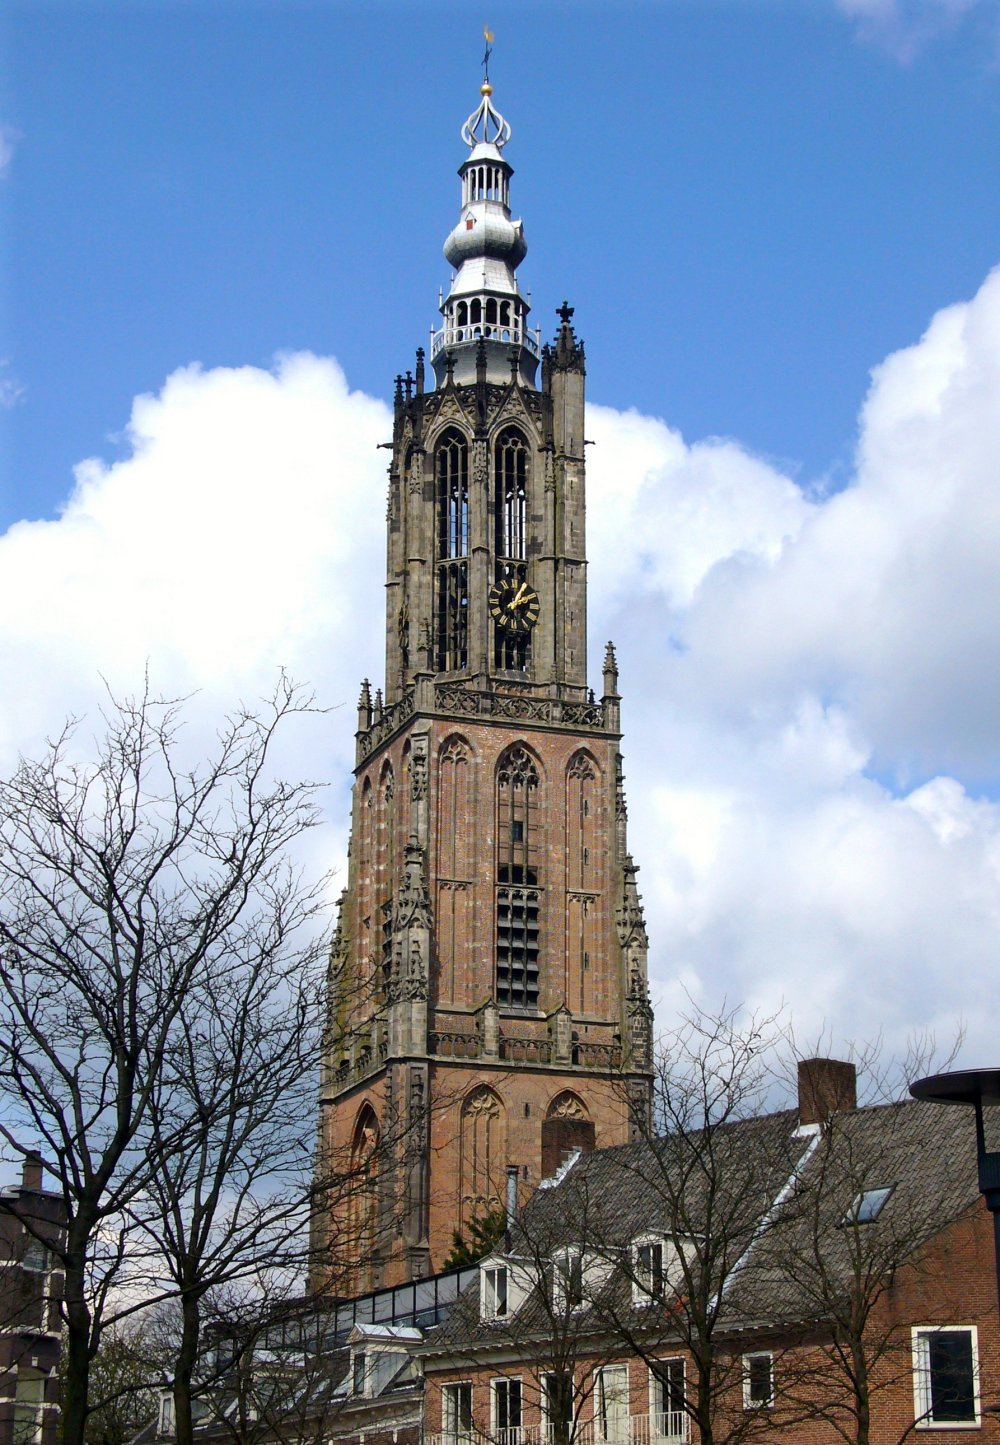 Amersfoort St. Mary's Tower Google image from http://c1038.r38.cf3.rackcdn.com/group4/building37500/media/0bn2fmj.jpg